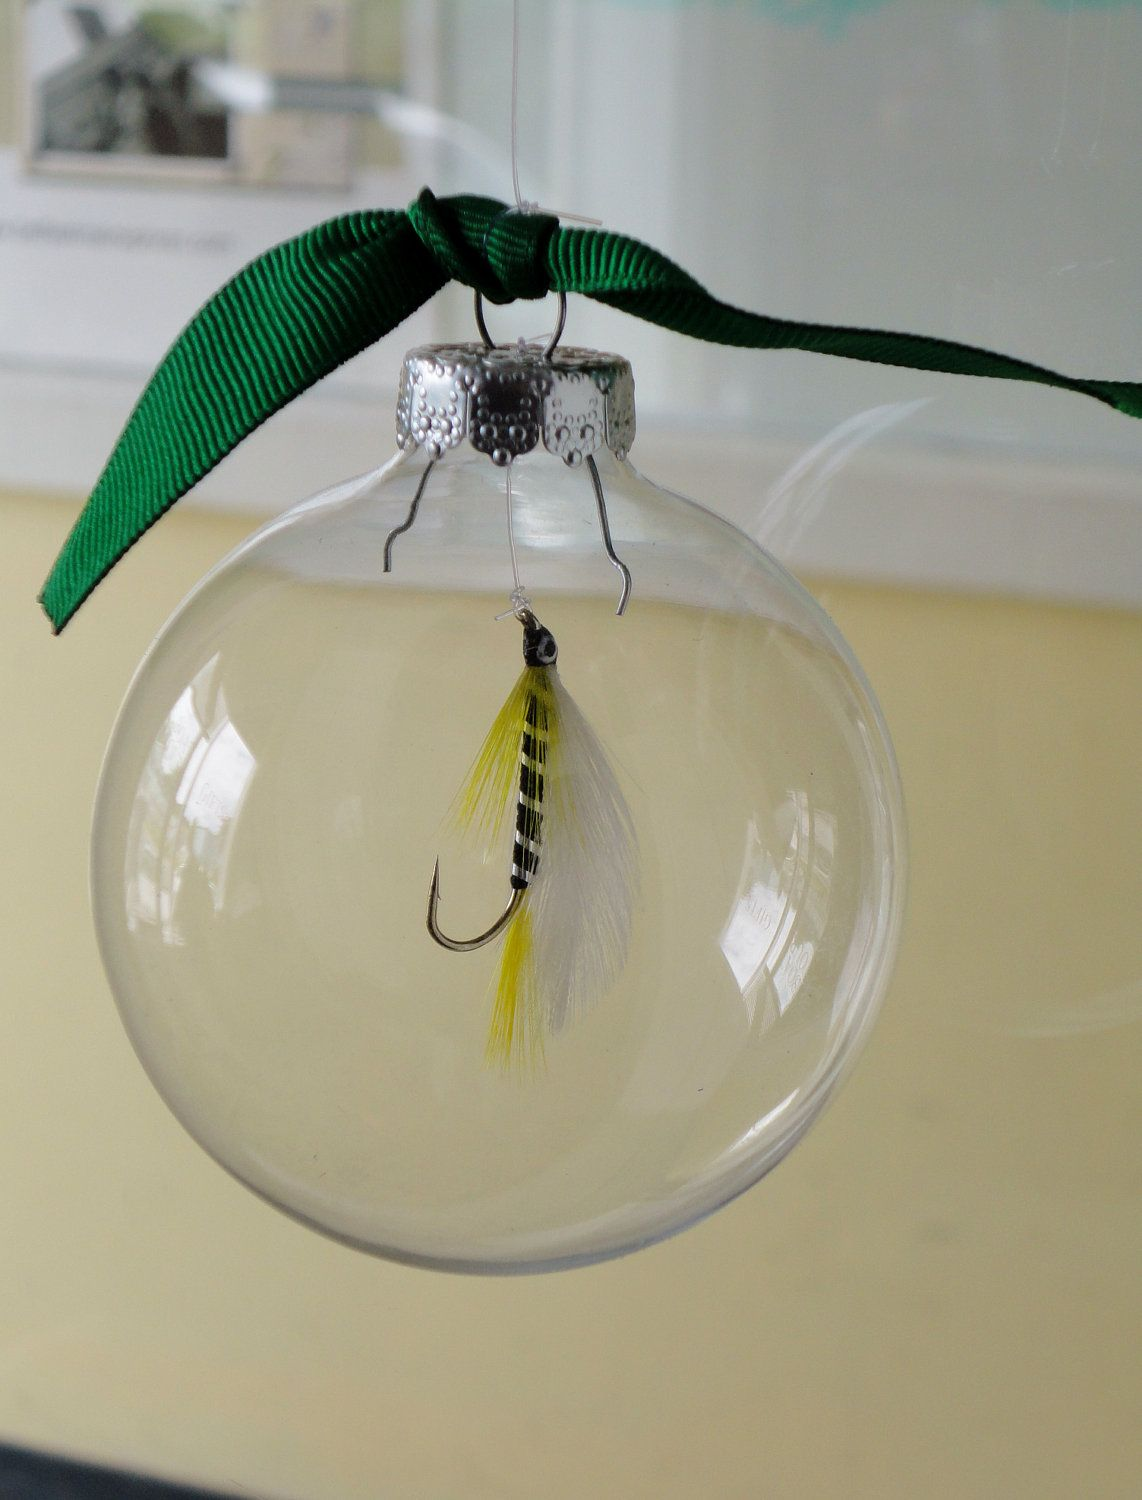 Fly Fishing Ornament   craftastic   Pinterest   Fish ornaments, Fly ...